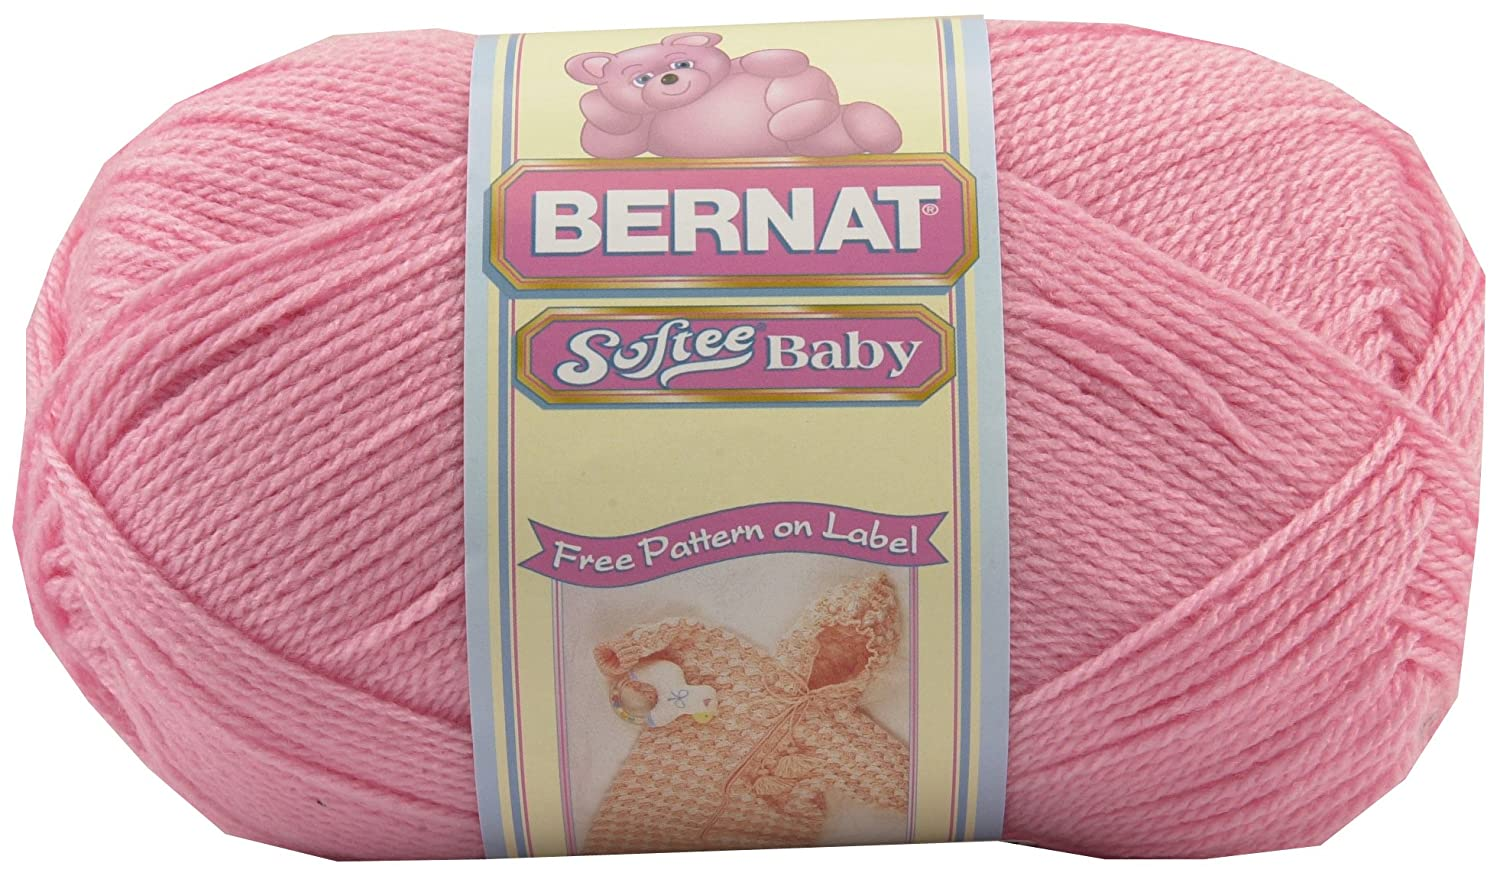 What is the Best and Softest Yarn to Buy For Baby Blankets